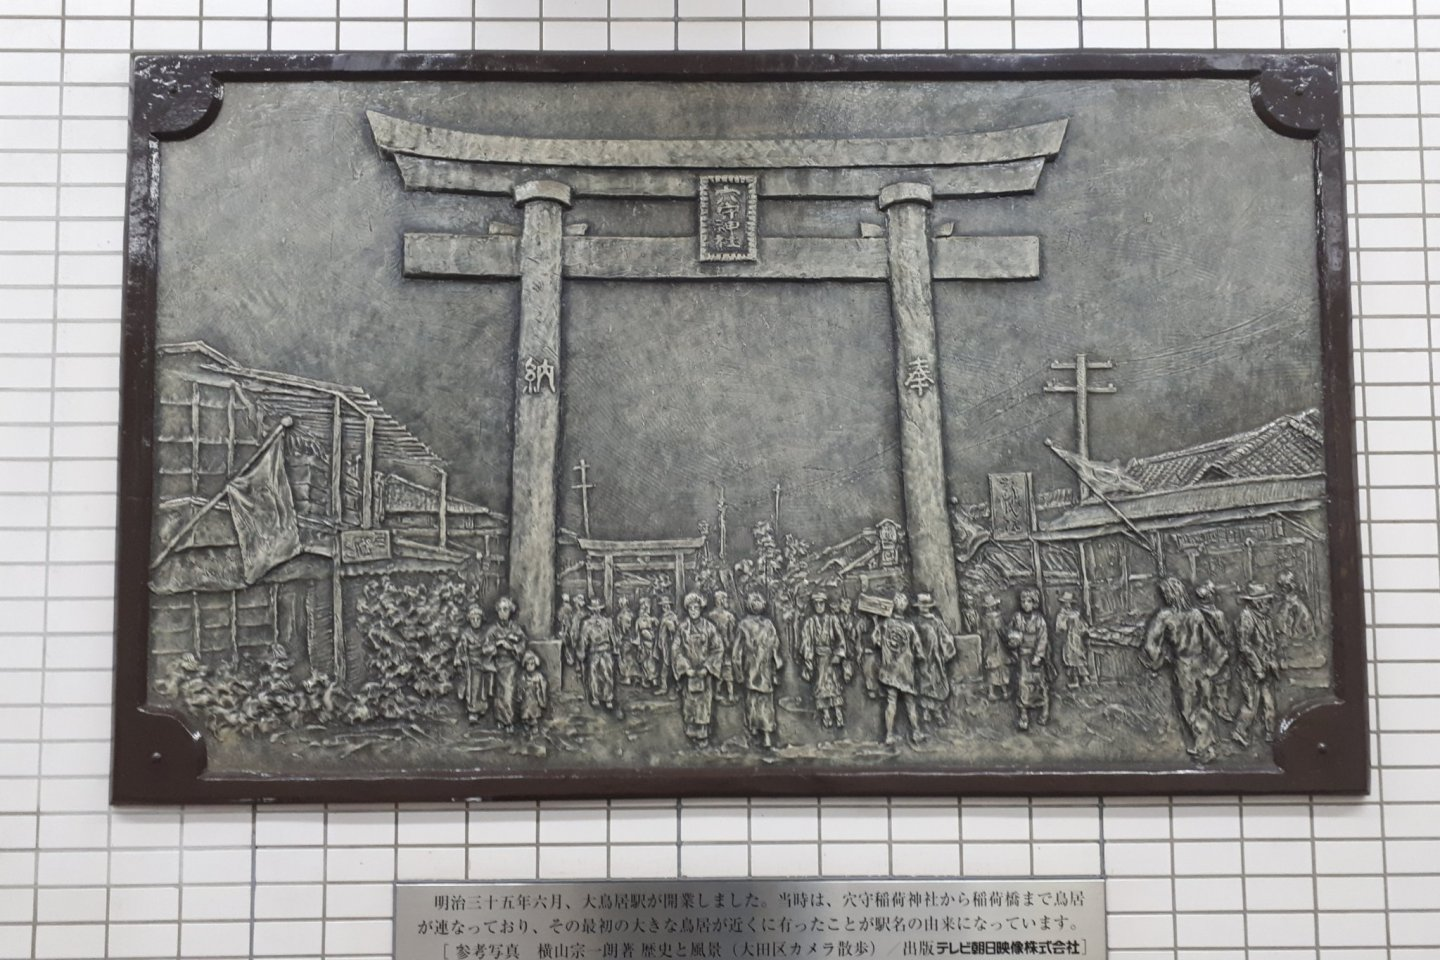 The original otorii large-gate that gave the station its name